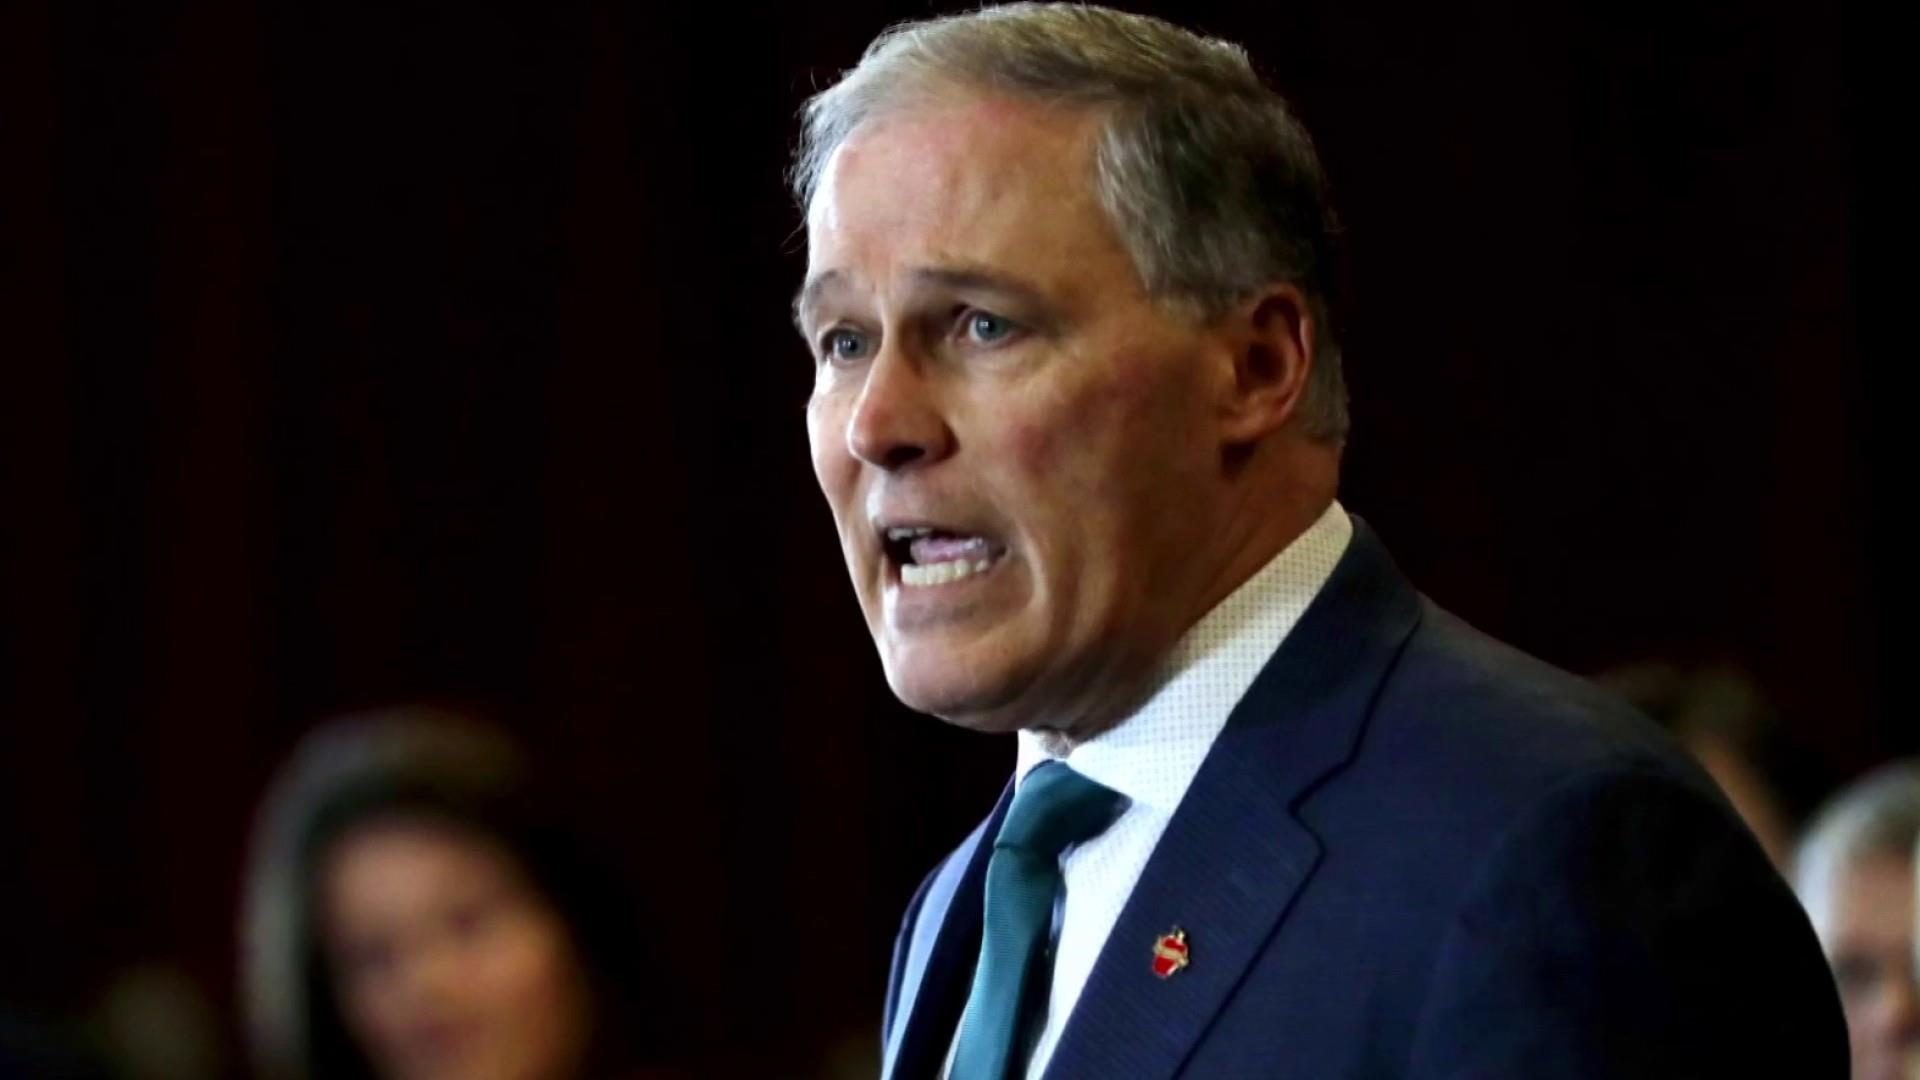 Inslee builds 2020 presidential campaign on climate change agenda